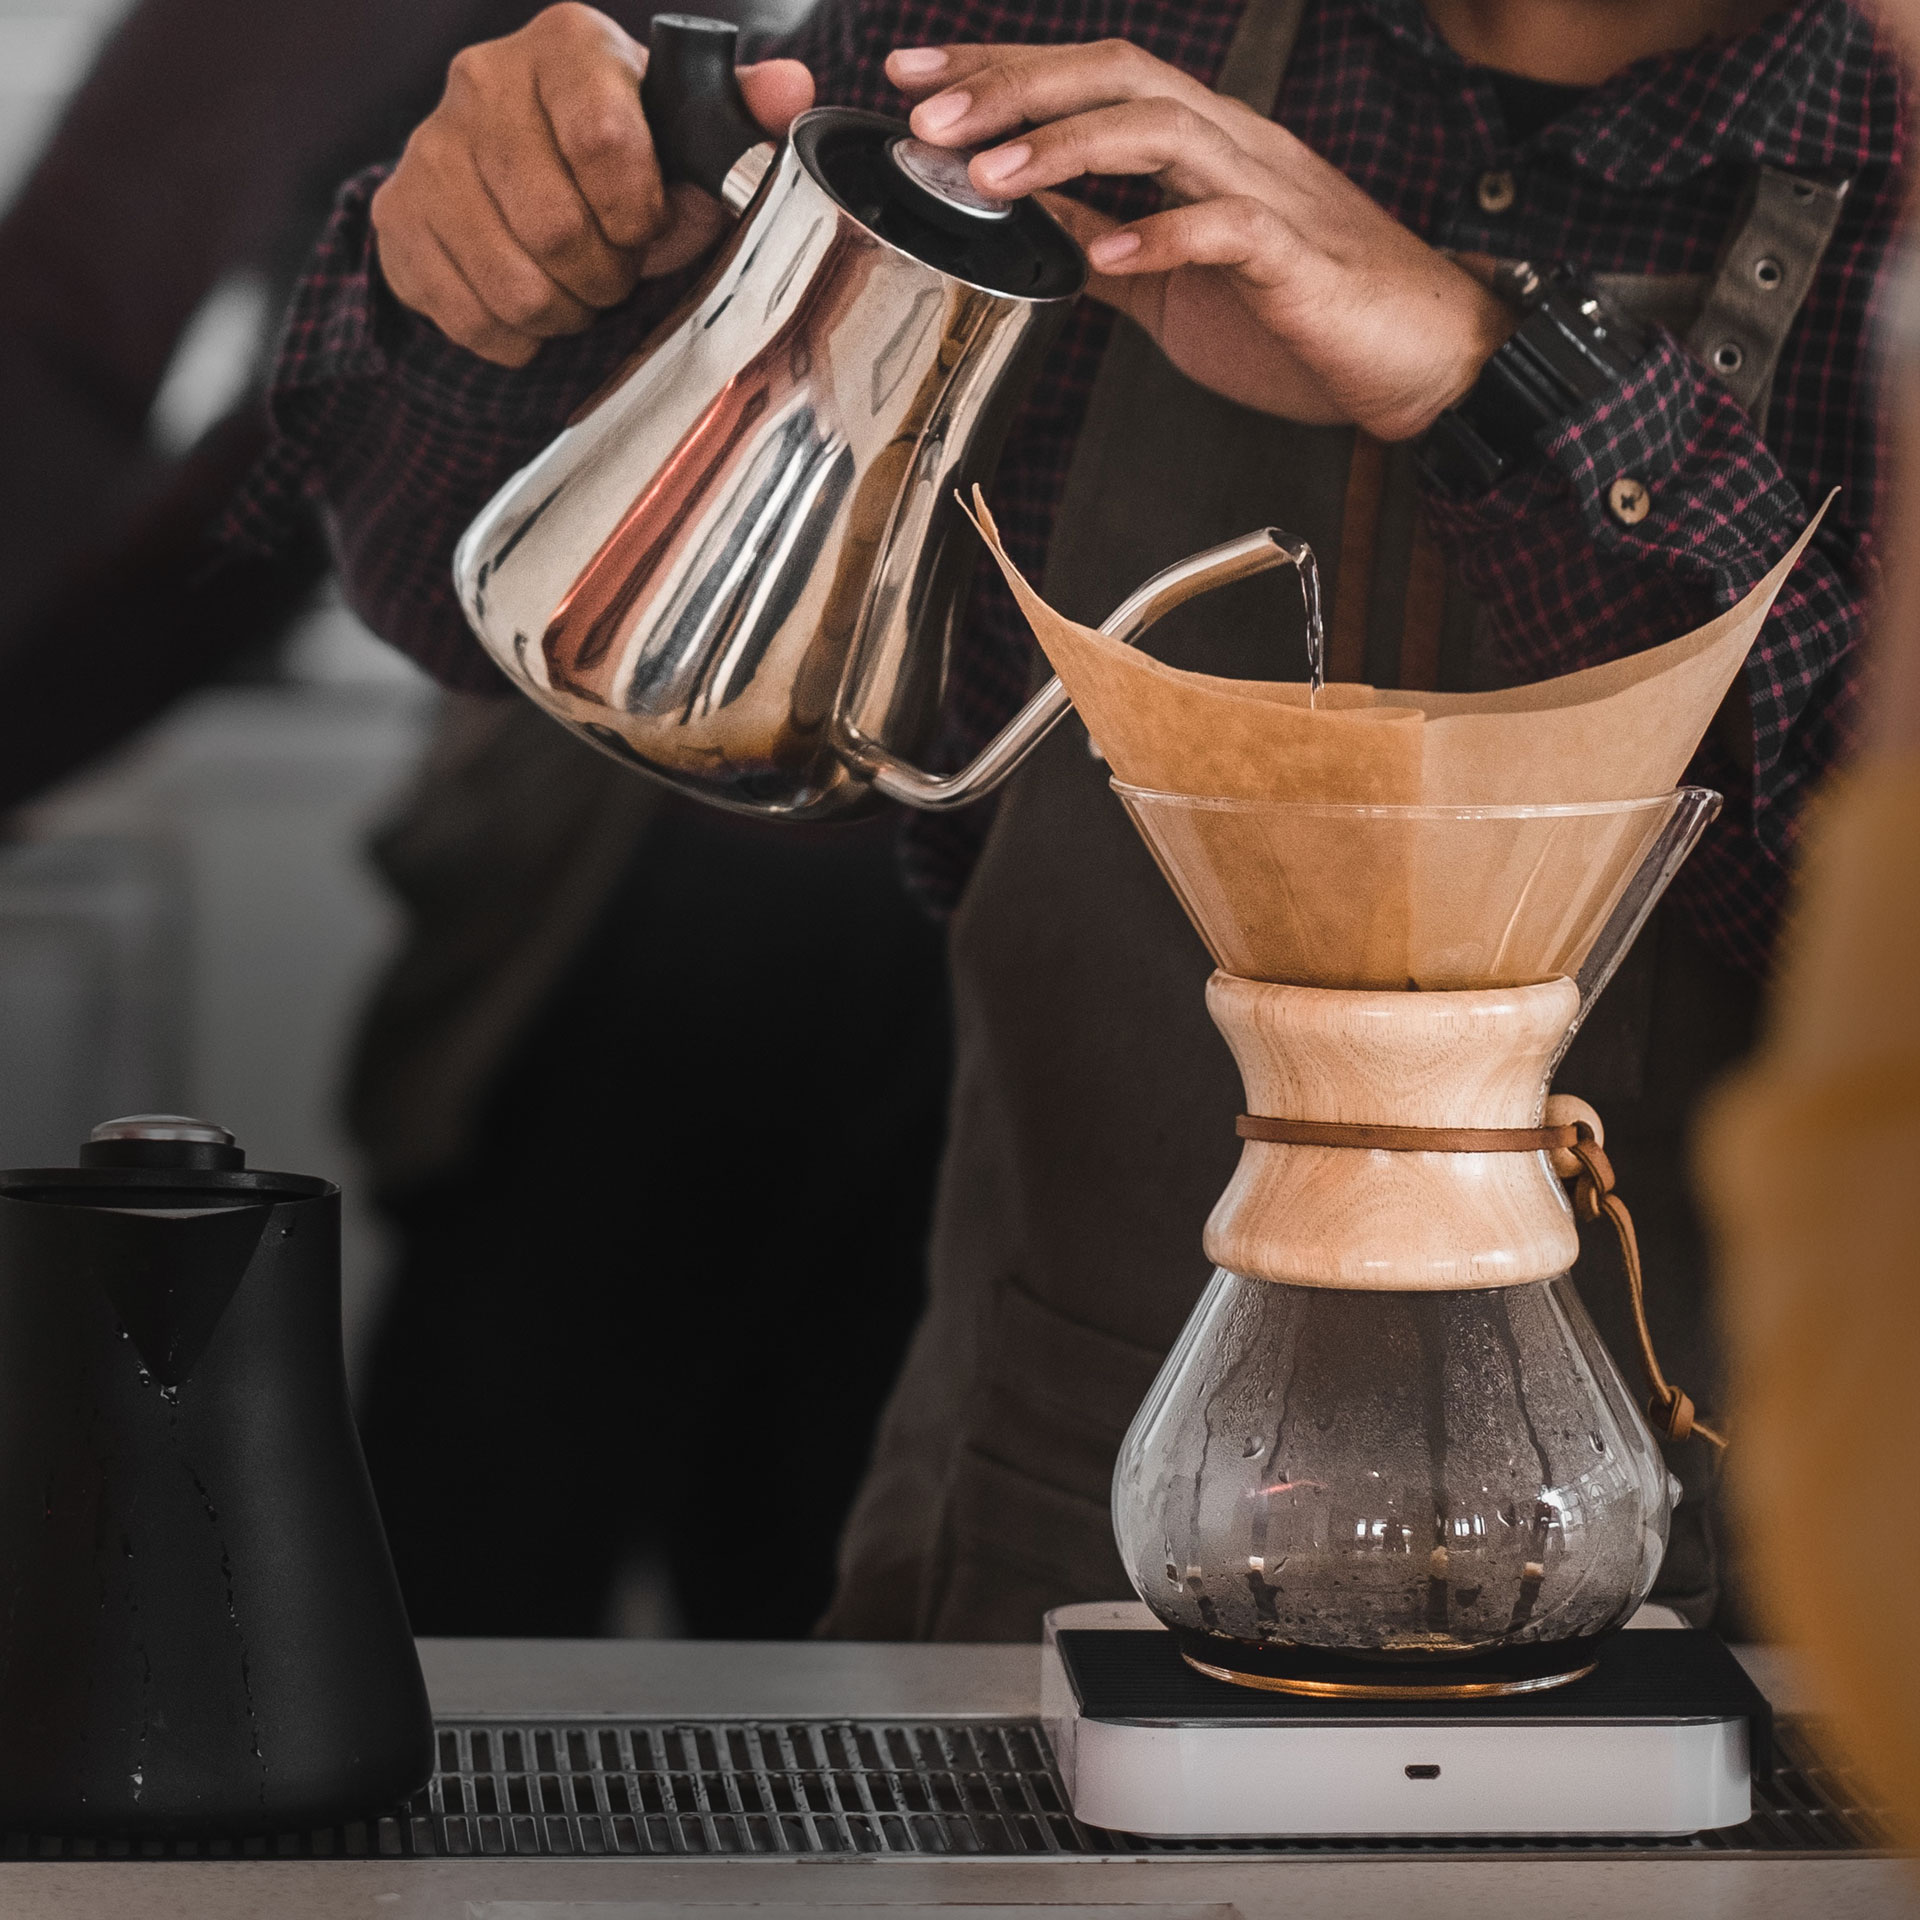 Brewing coffee in a Chemex